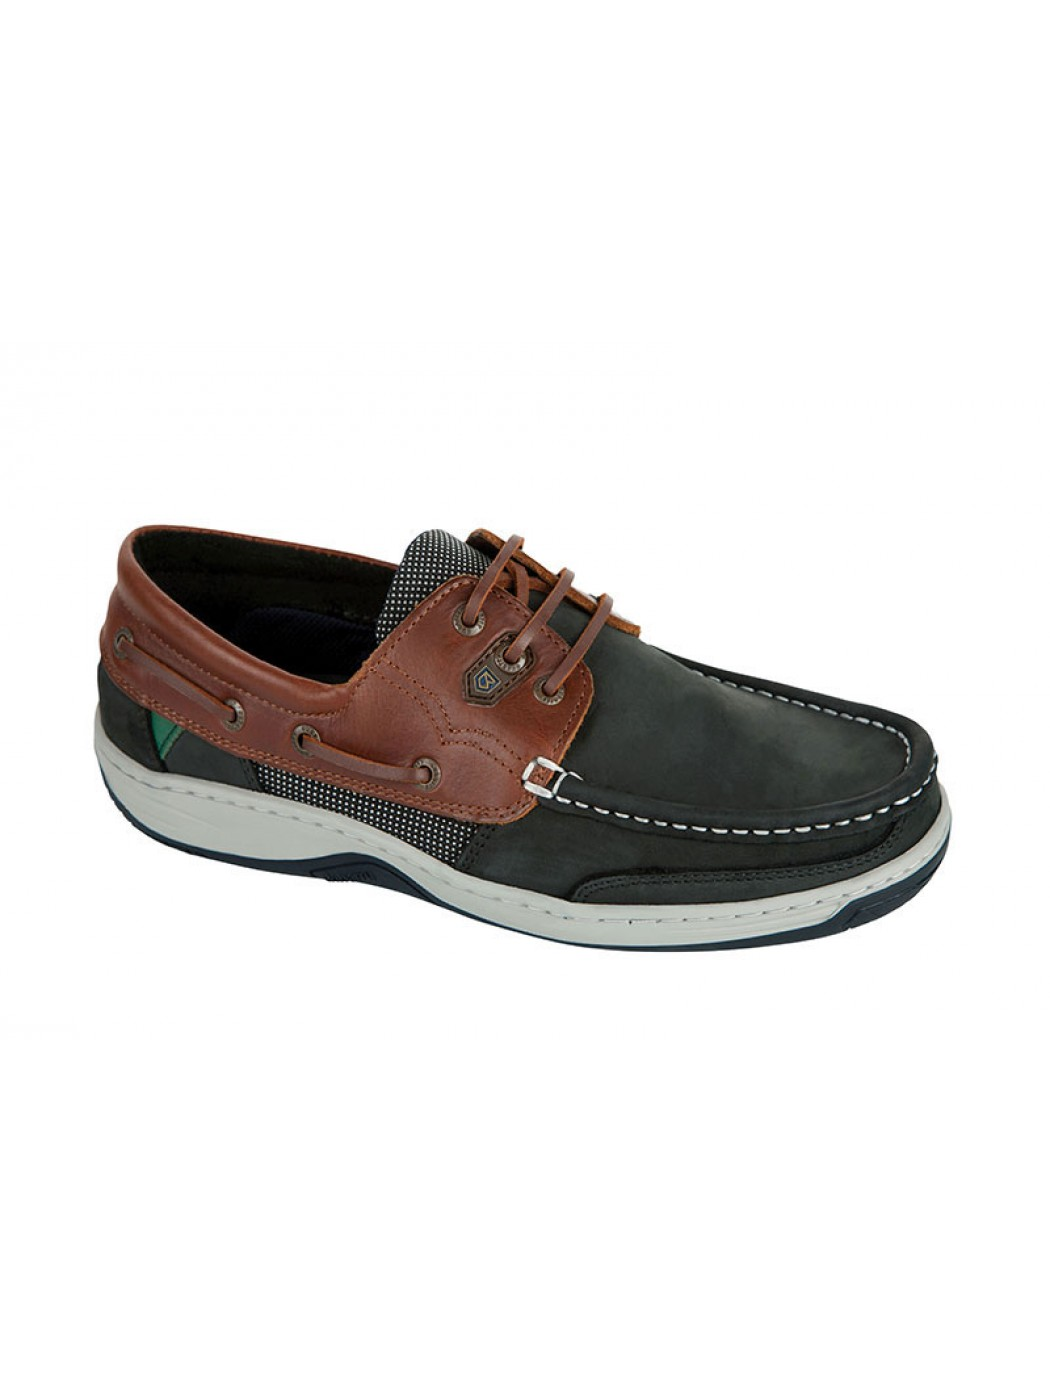 regatta-mens-decks-navy-brown